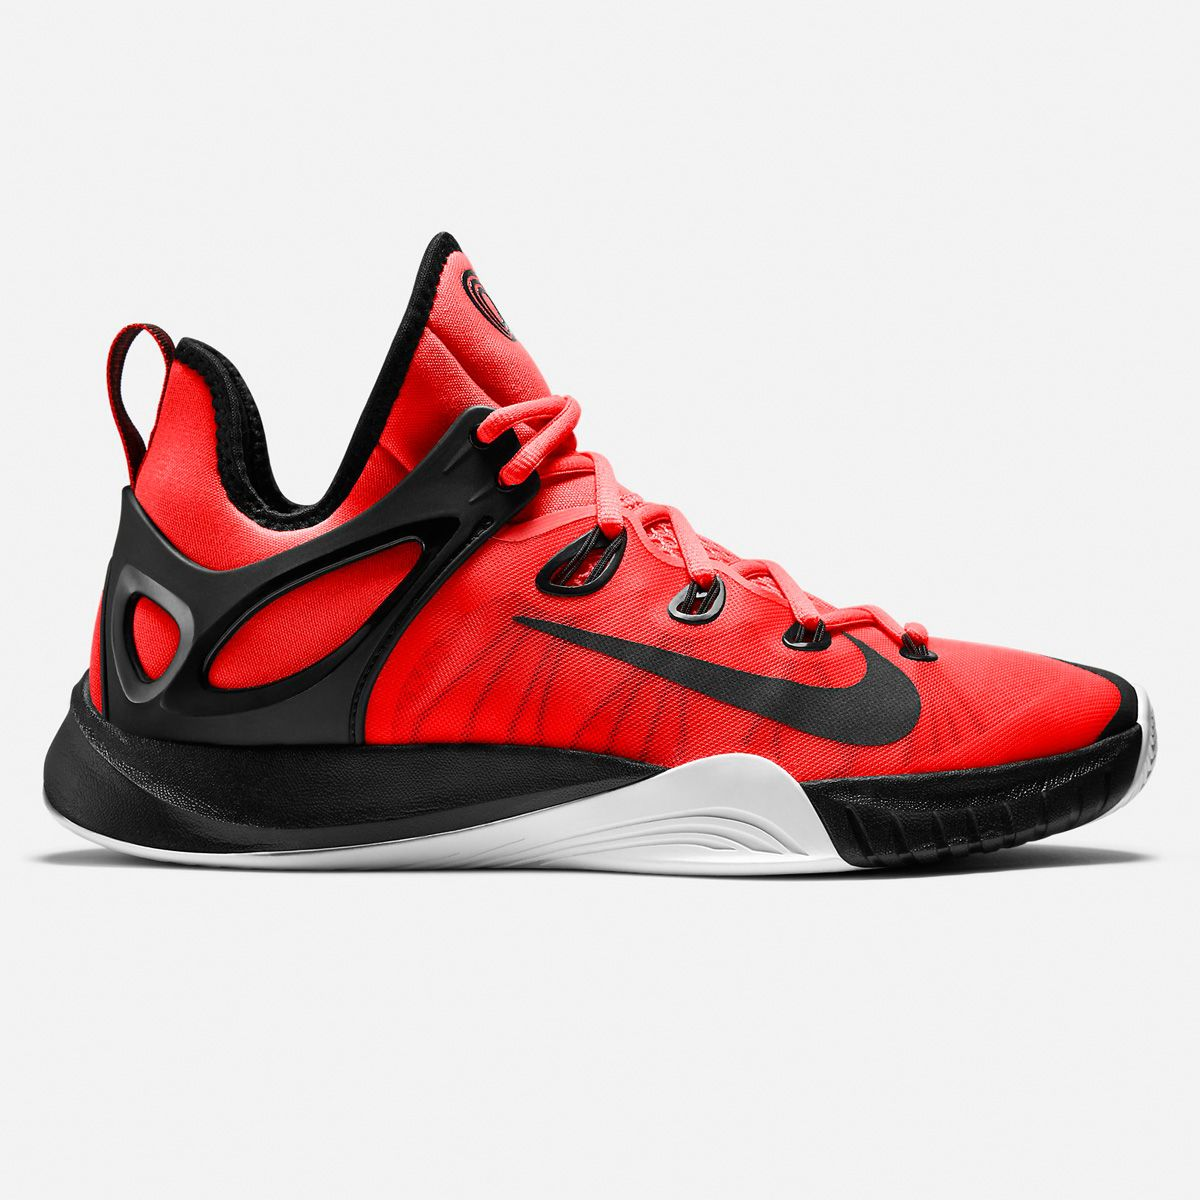 timeless design b29da 6fac7 Nike Hyperrev 2015 (Bright Crimson White Black)   Villa